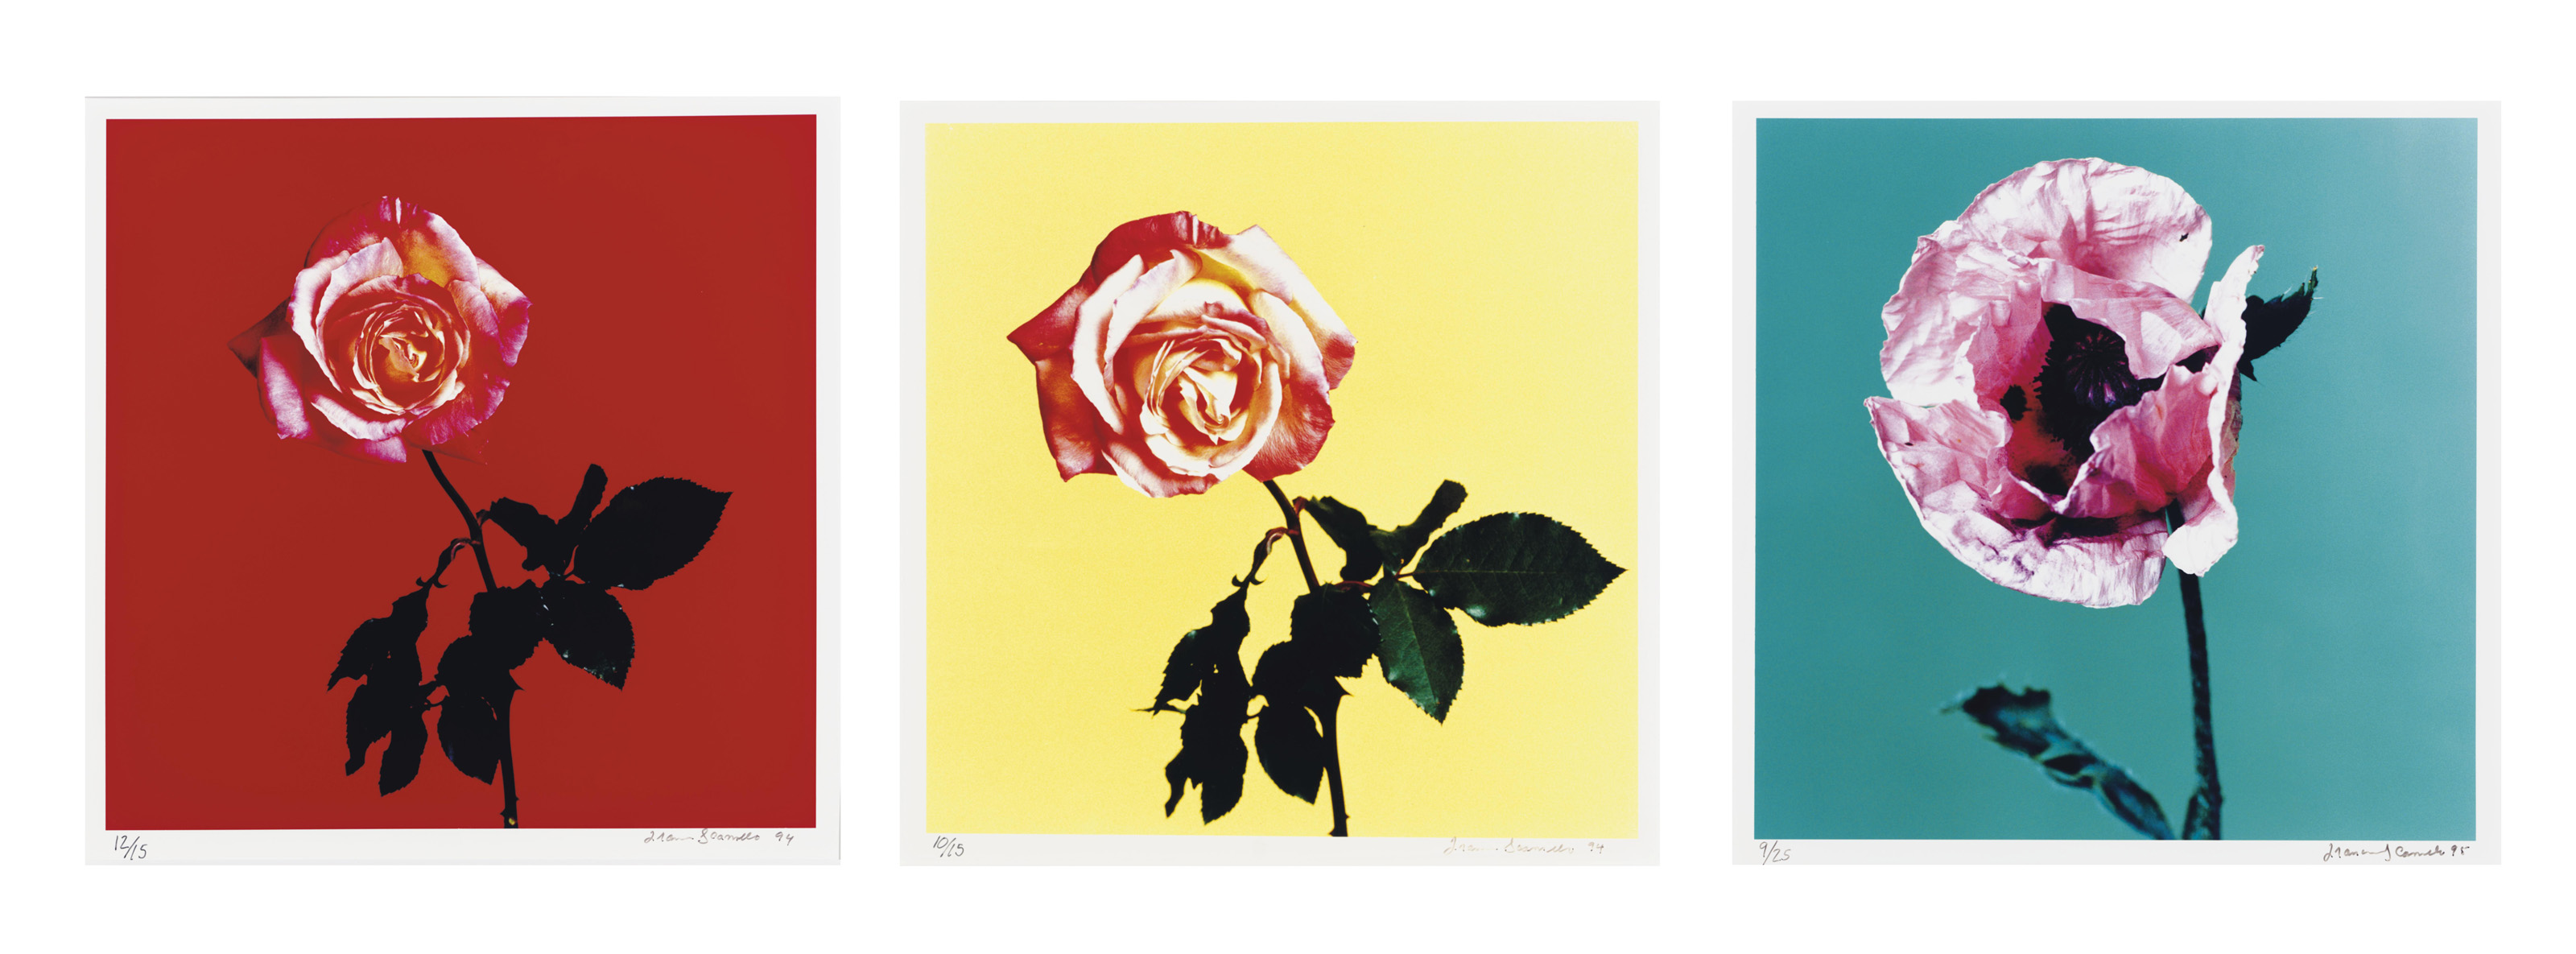 Rose, 1994; Poppy, 1995; and Rose, 1994